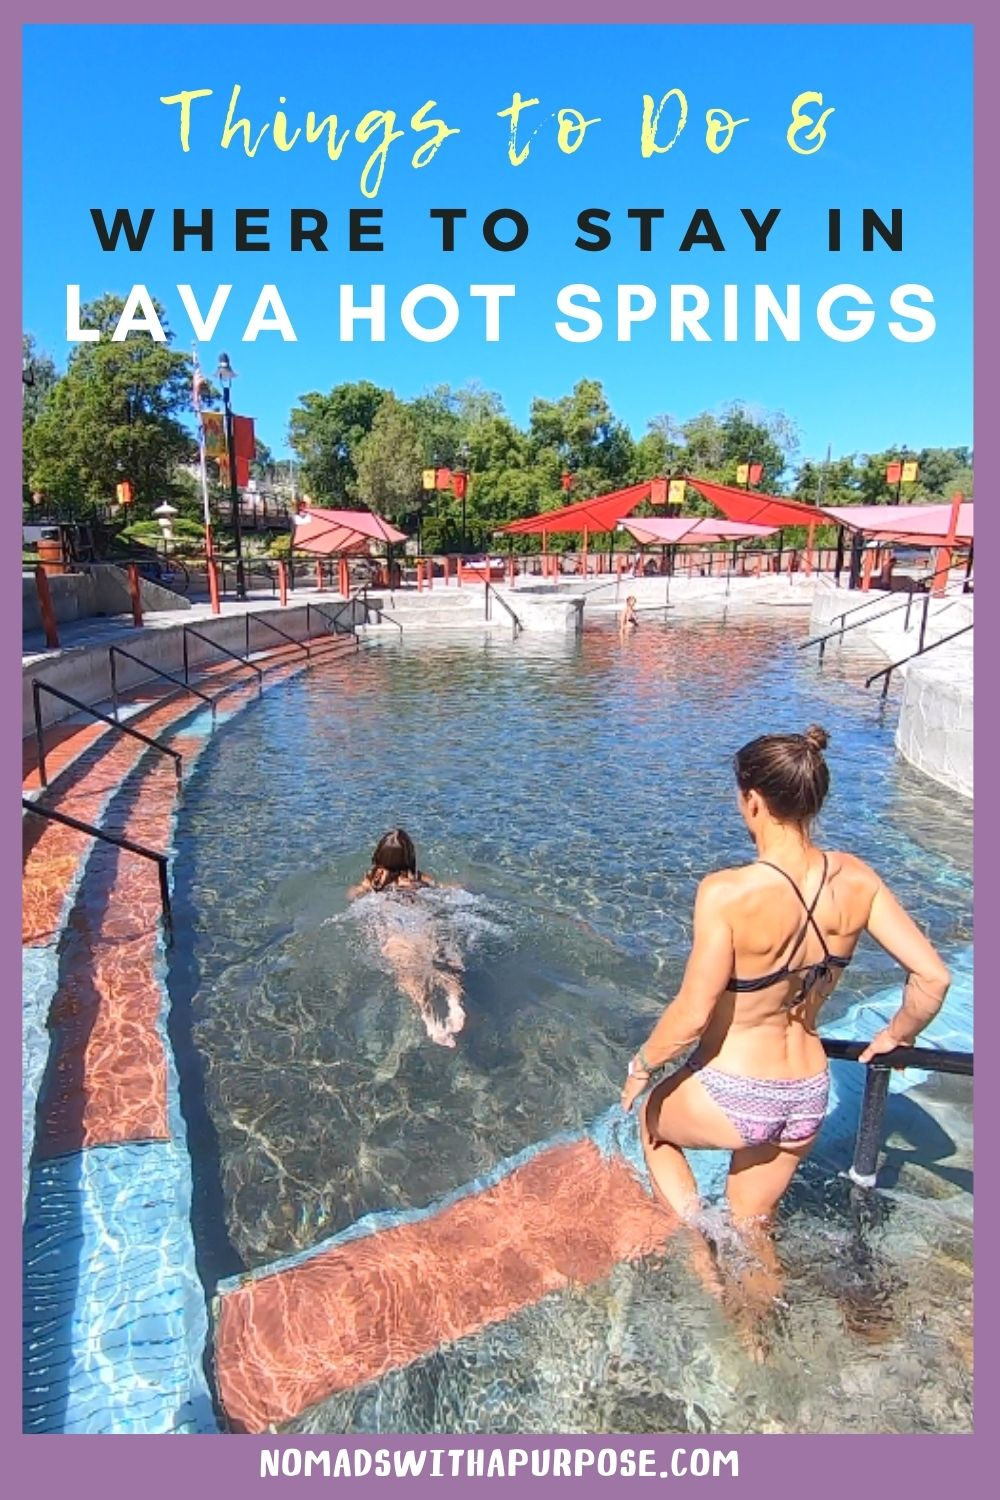 Lava Hot Springs: Things to do + where to stay